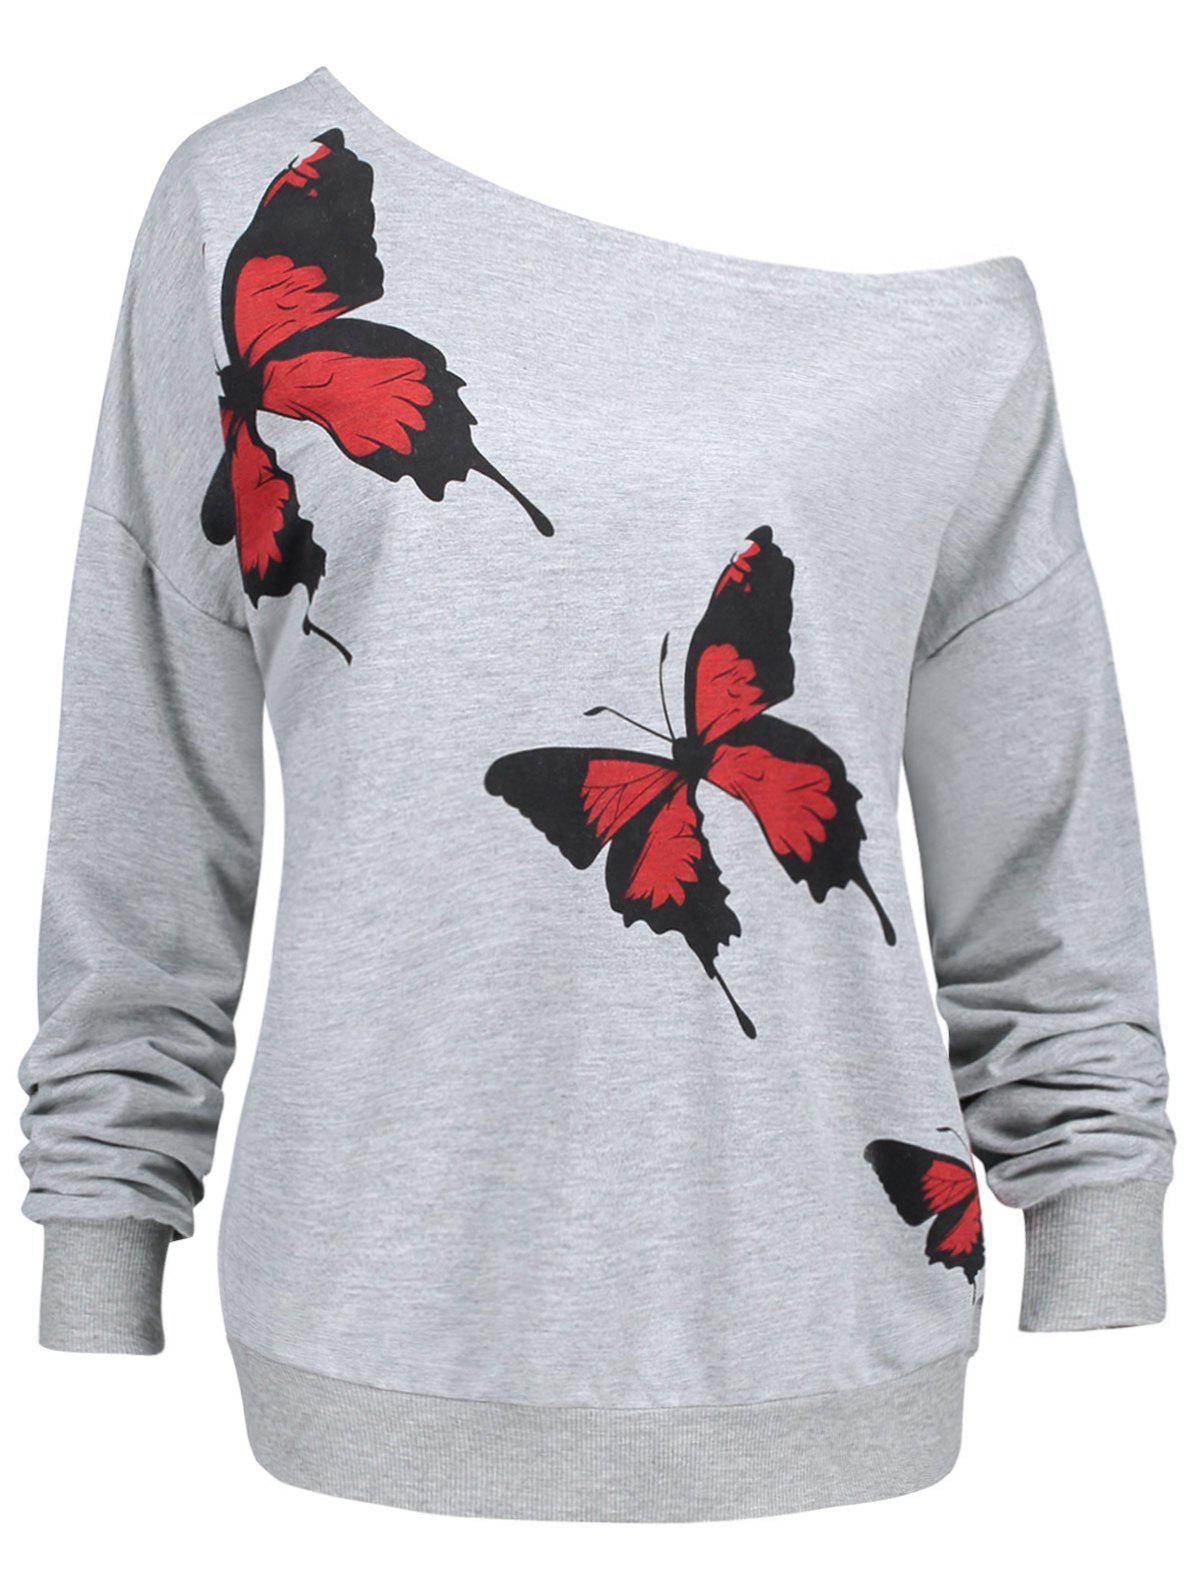 Plus Size Butterfly Printed Skew Neck SweatshirtWOMEN<br><br>Size: 2XL; Color: GRAY; Material: Cotton Blend,Polyester; Shirt Length: Regular; Sleeve Length: Full; Style: Fashion; Pattern Style: Insect; Season: Fall,Winter; Weight: 0.4000kg; Package Contents: 1 x Sweatshirt;